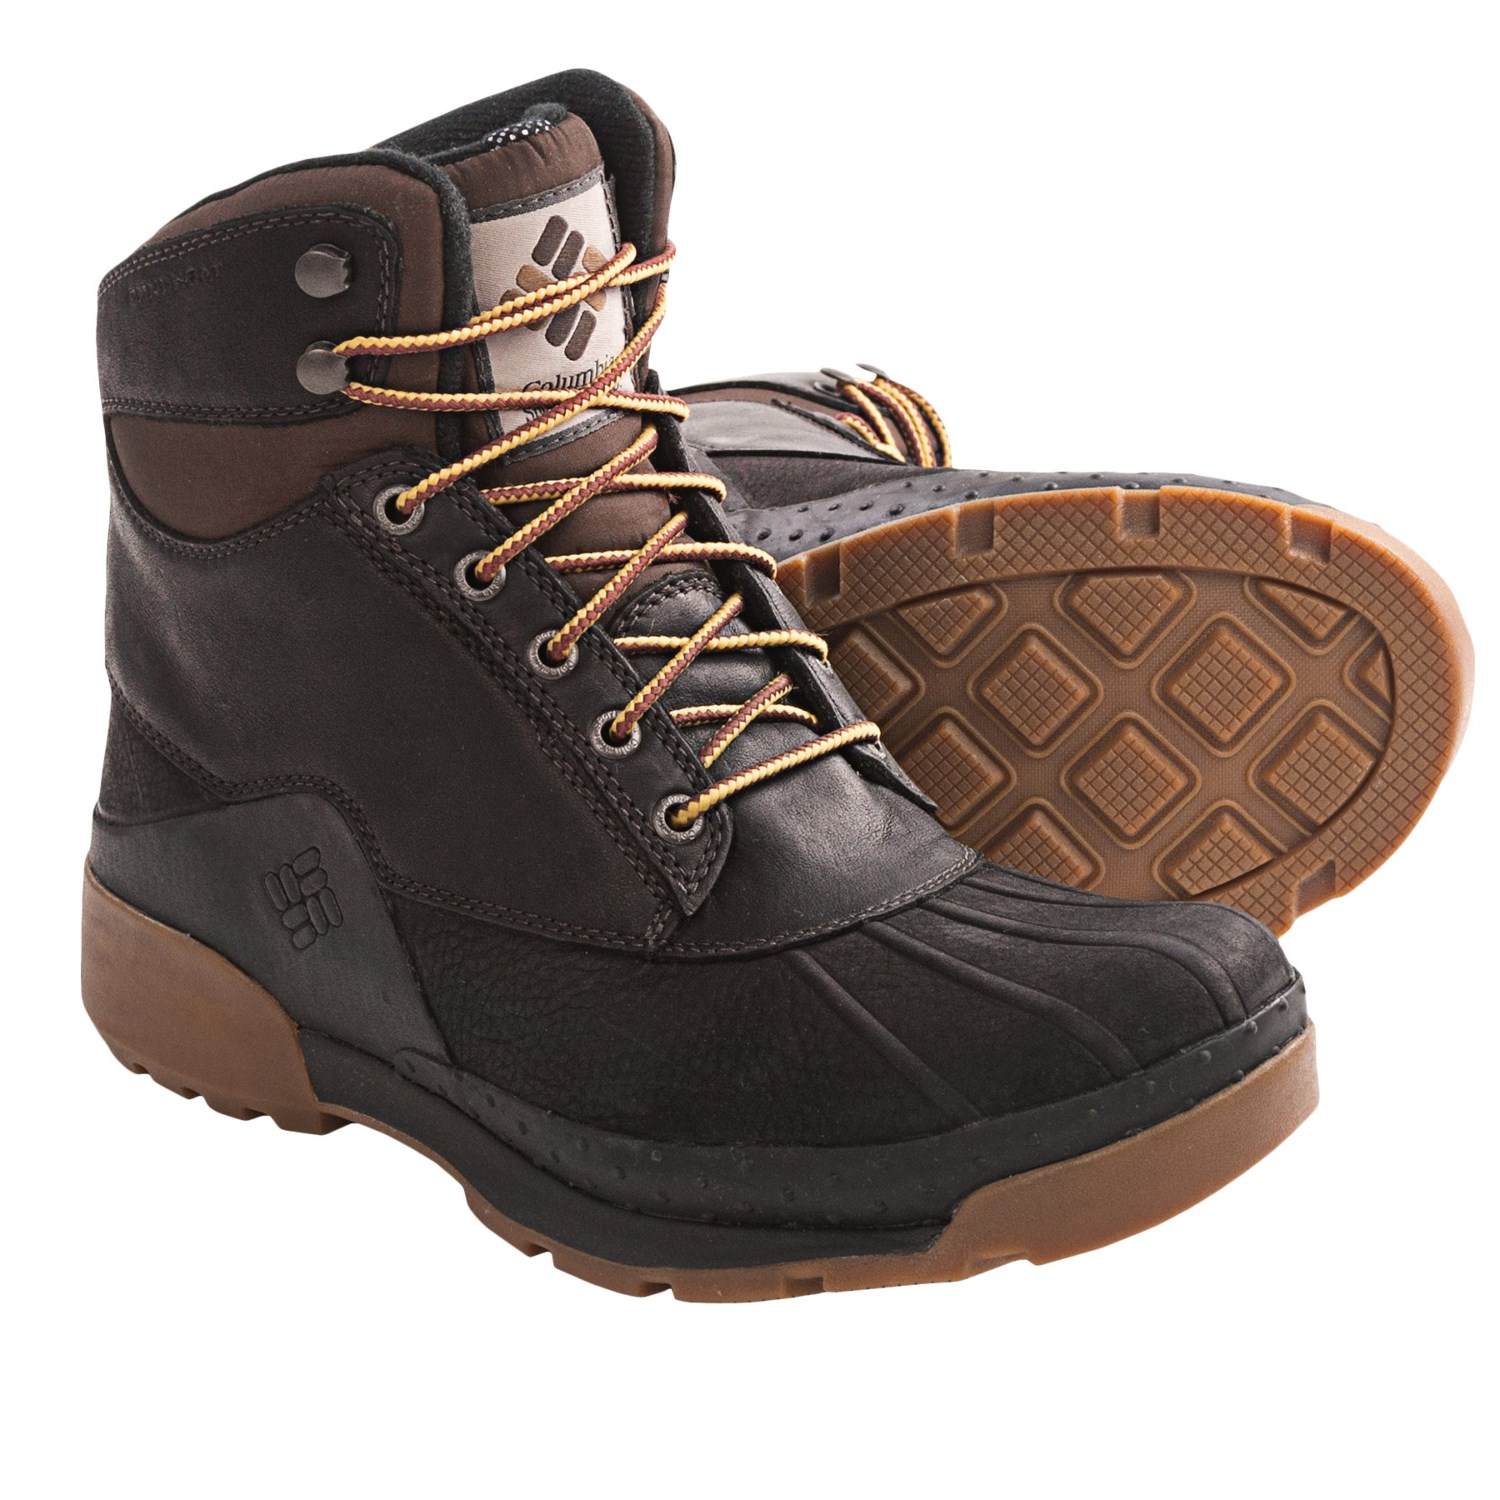 Best Insulated Men's Winter Boots | Division of Global Affairs